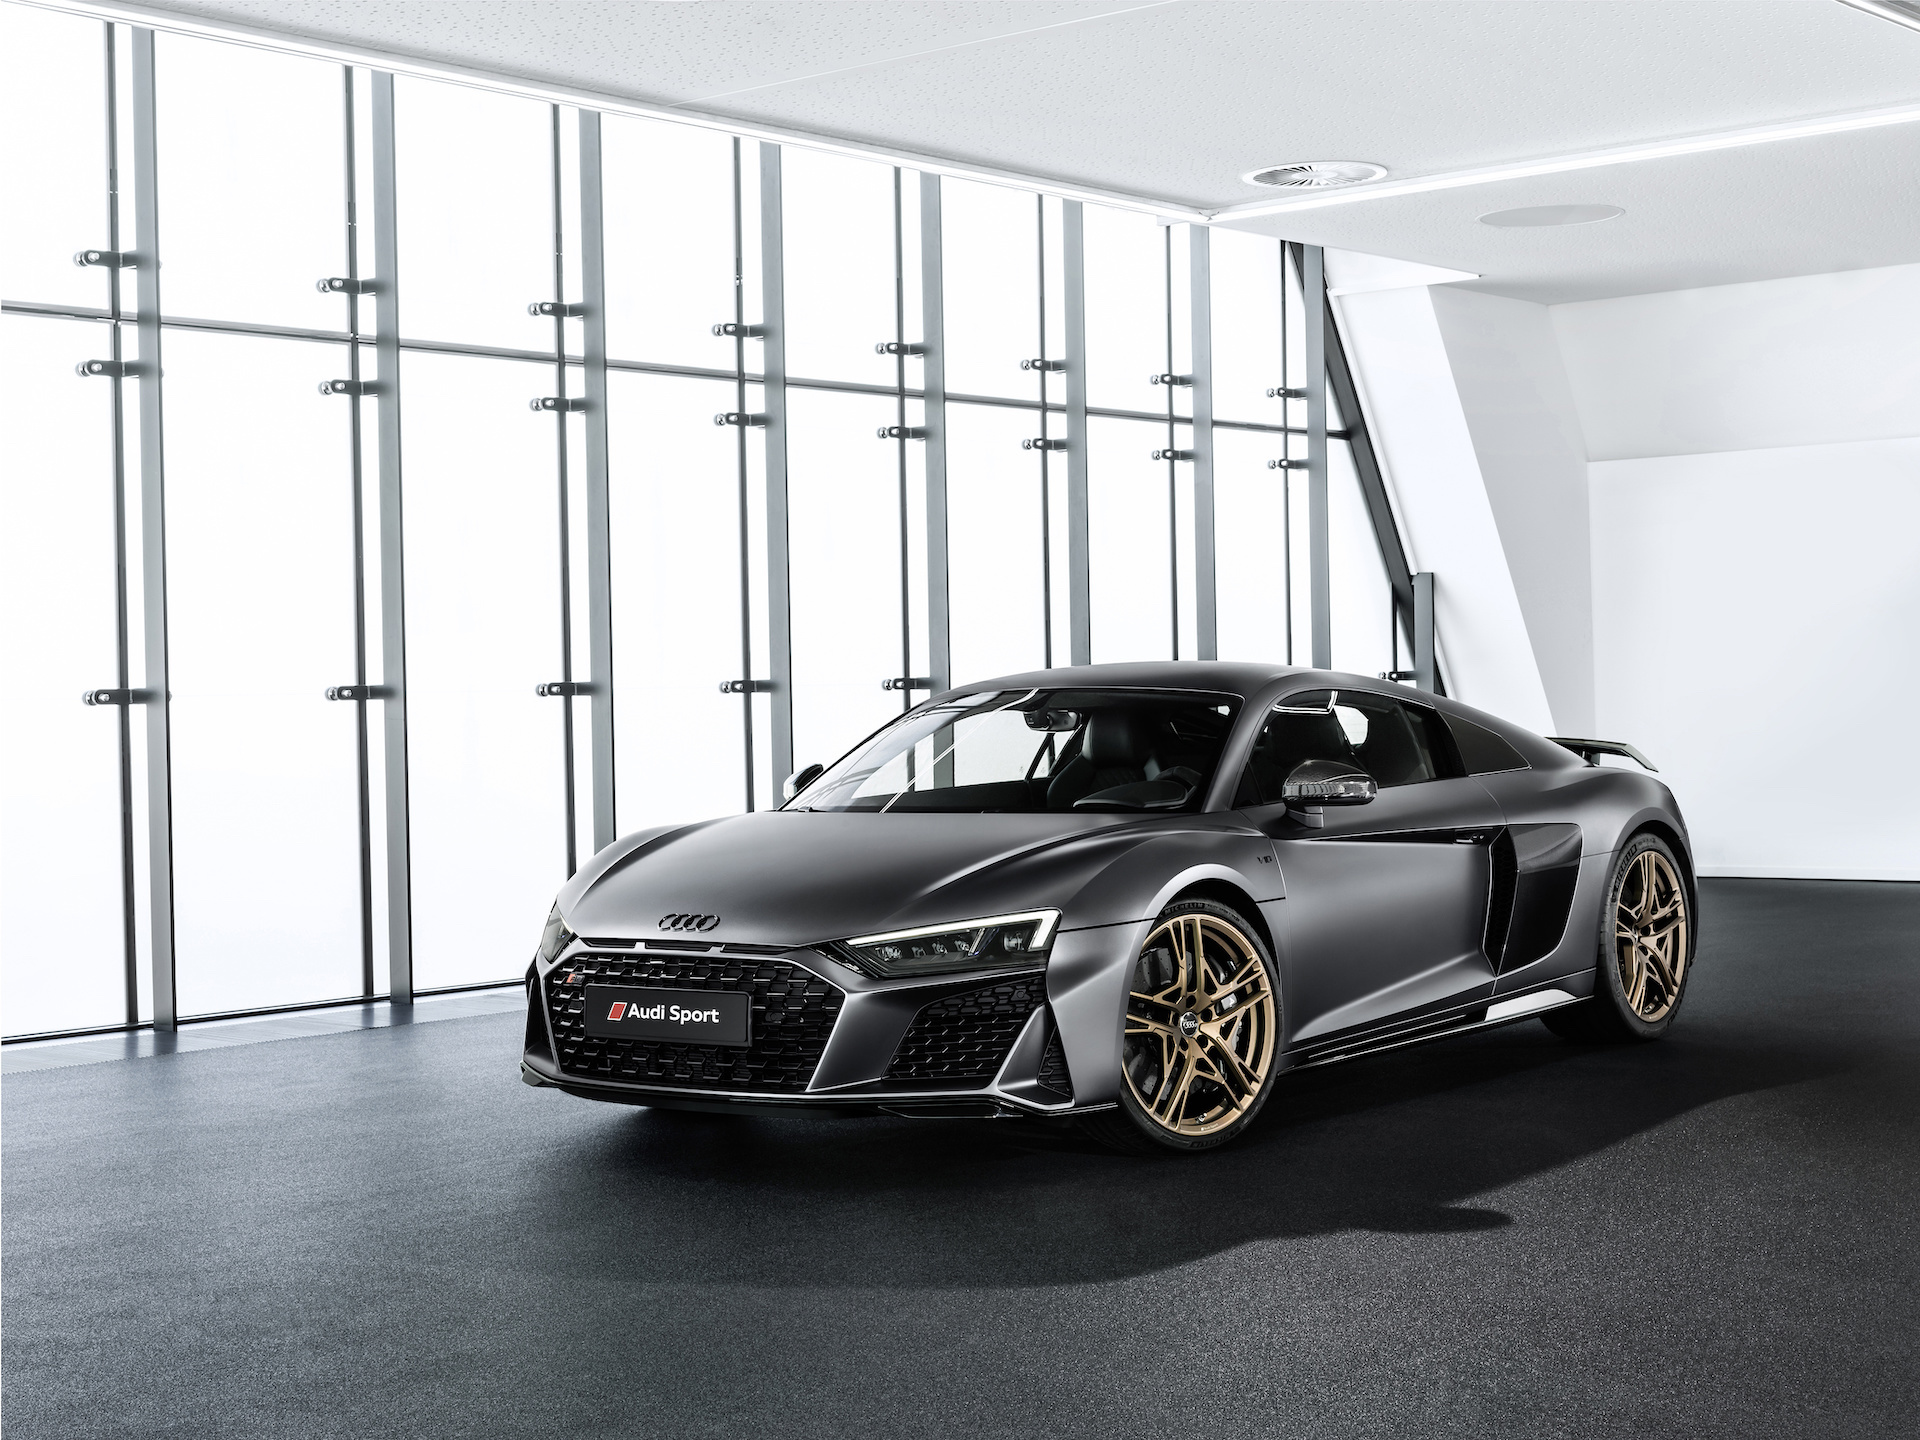 2019 Audi R8 V10 Decennium (Color: Daytona Gray Matt) Front Three-Quarter Wallpapers (1)